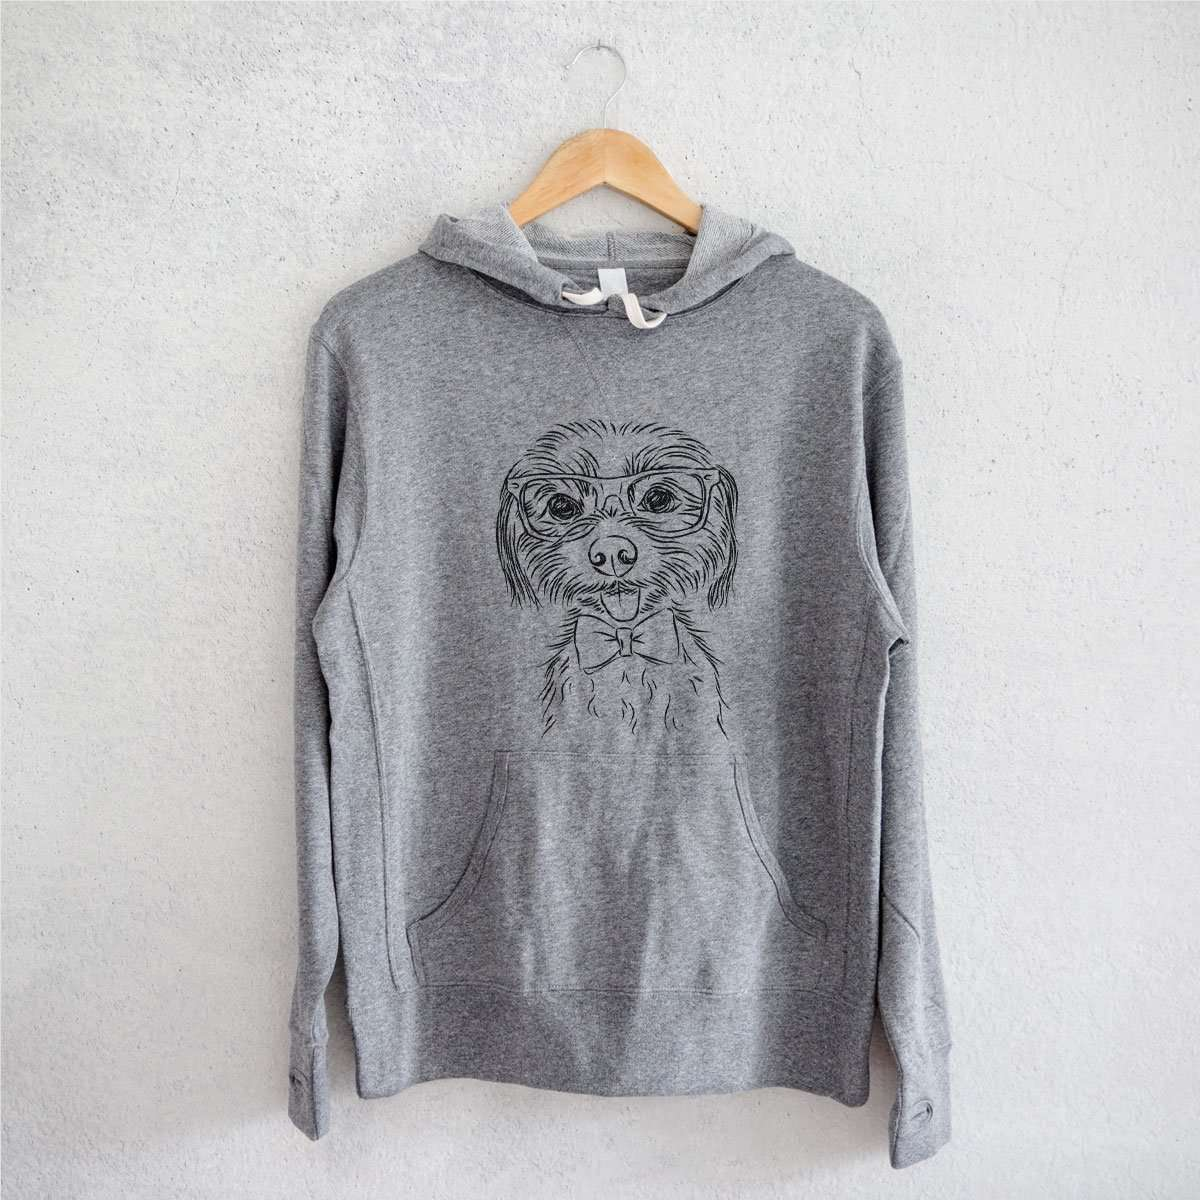 Mater the Yorkshire Terrier - Grey French Terry Hooded Sweatshirt